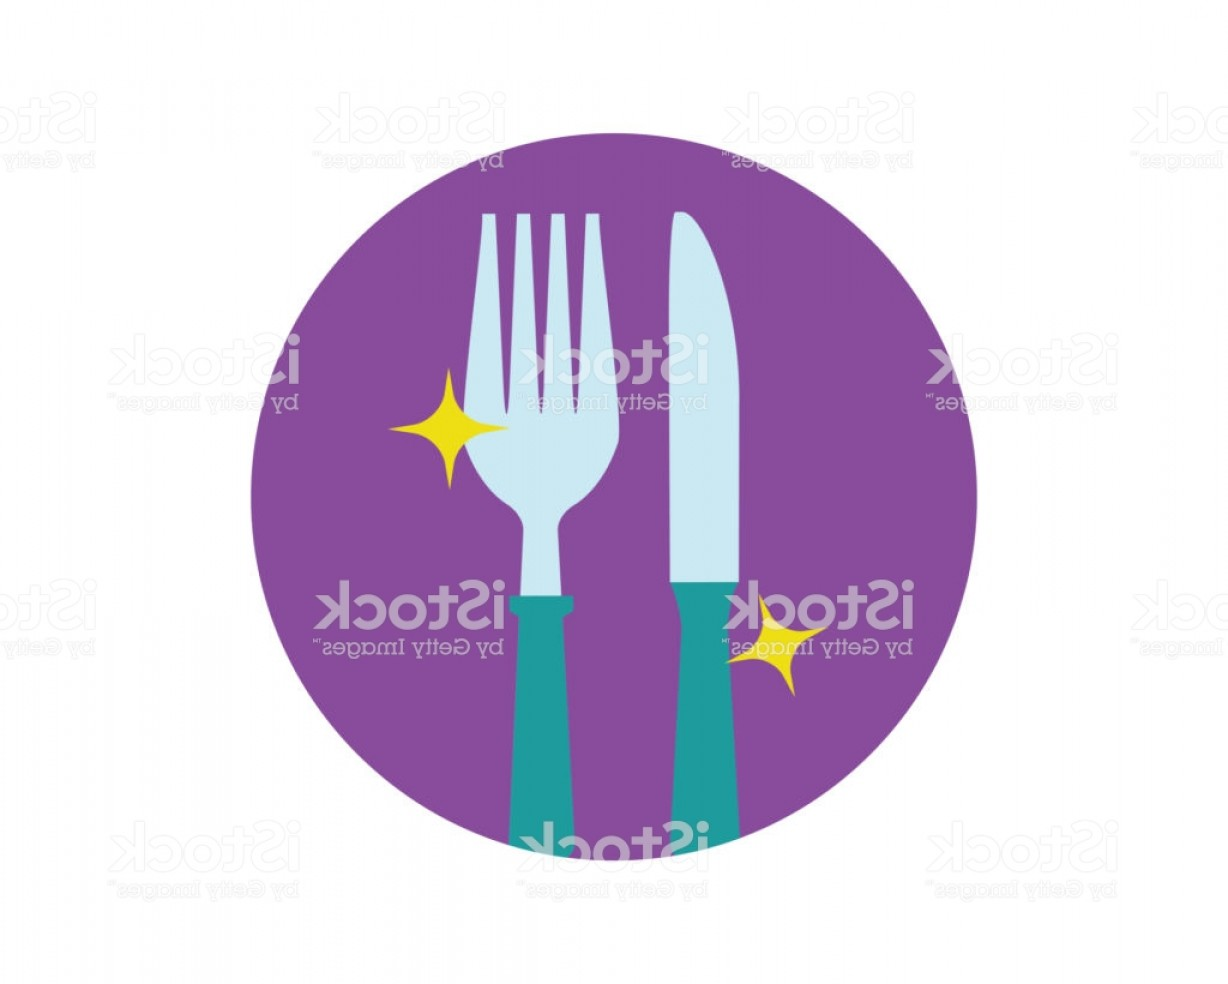 Modern Knife Fork And Spoon Vector Logo: Spoon And Knife Modern Flat Icon Illustration Vector Food Flat Icon Illustration Gm